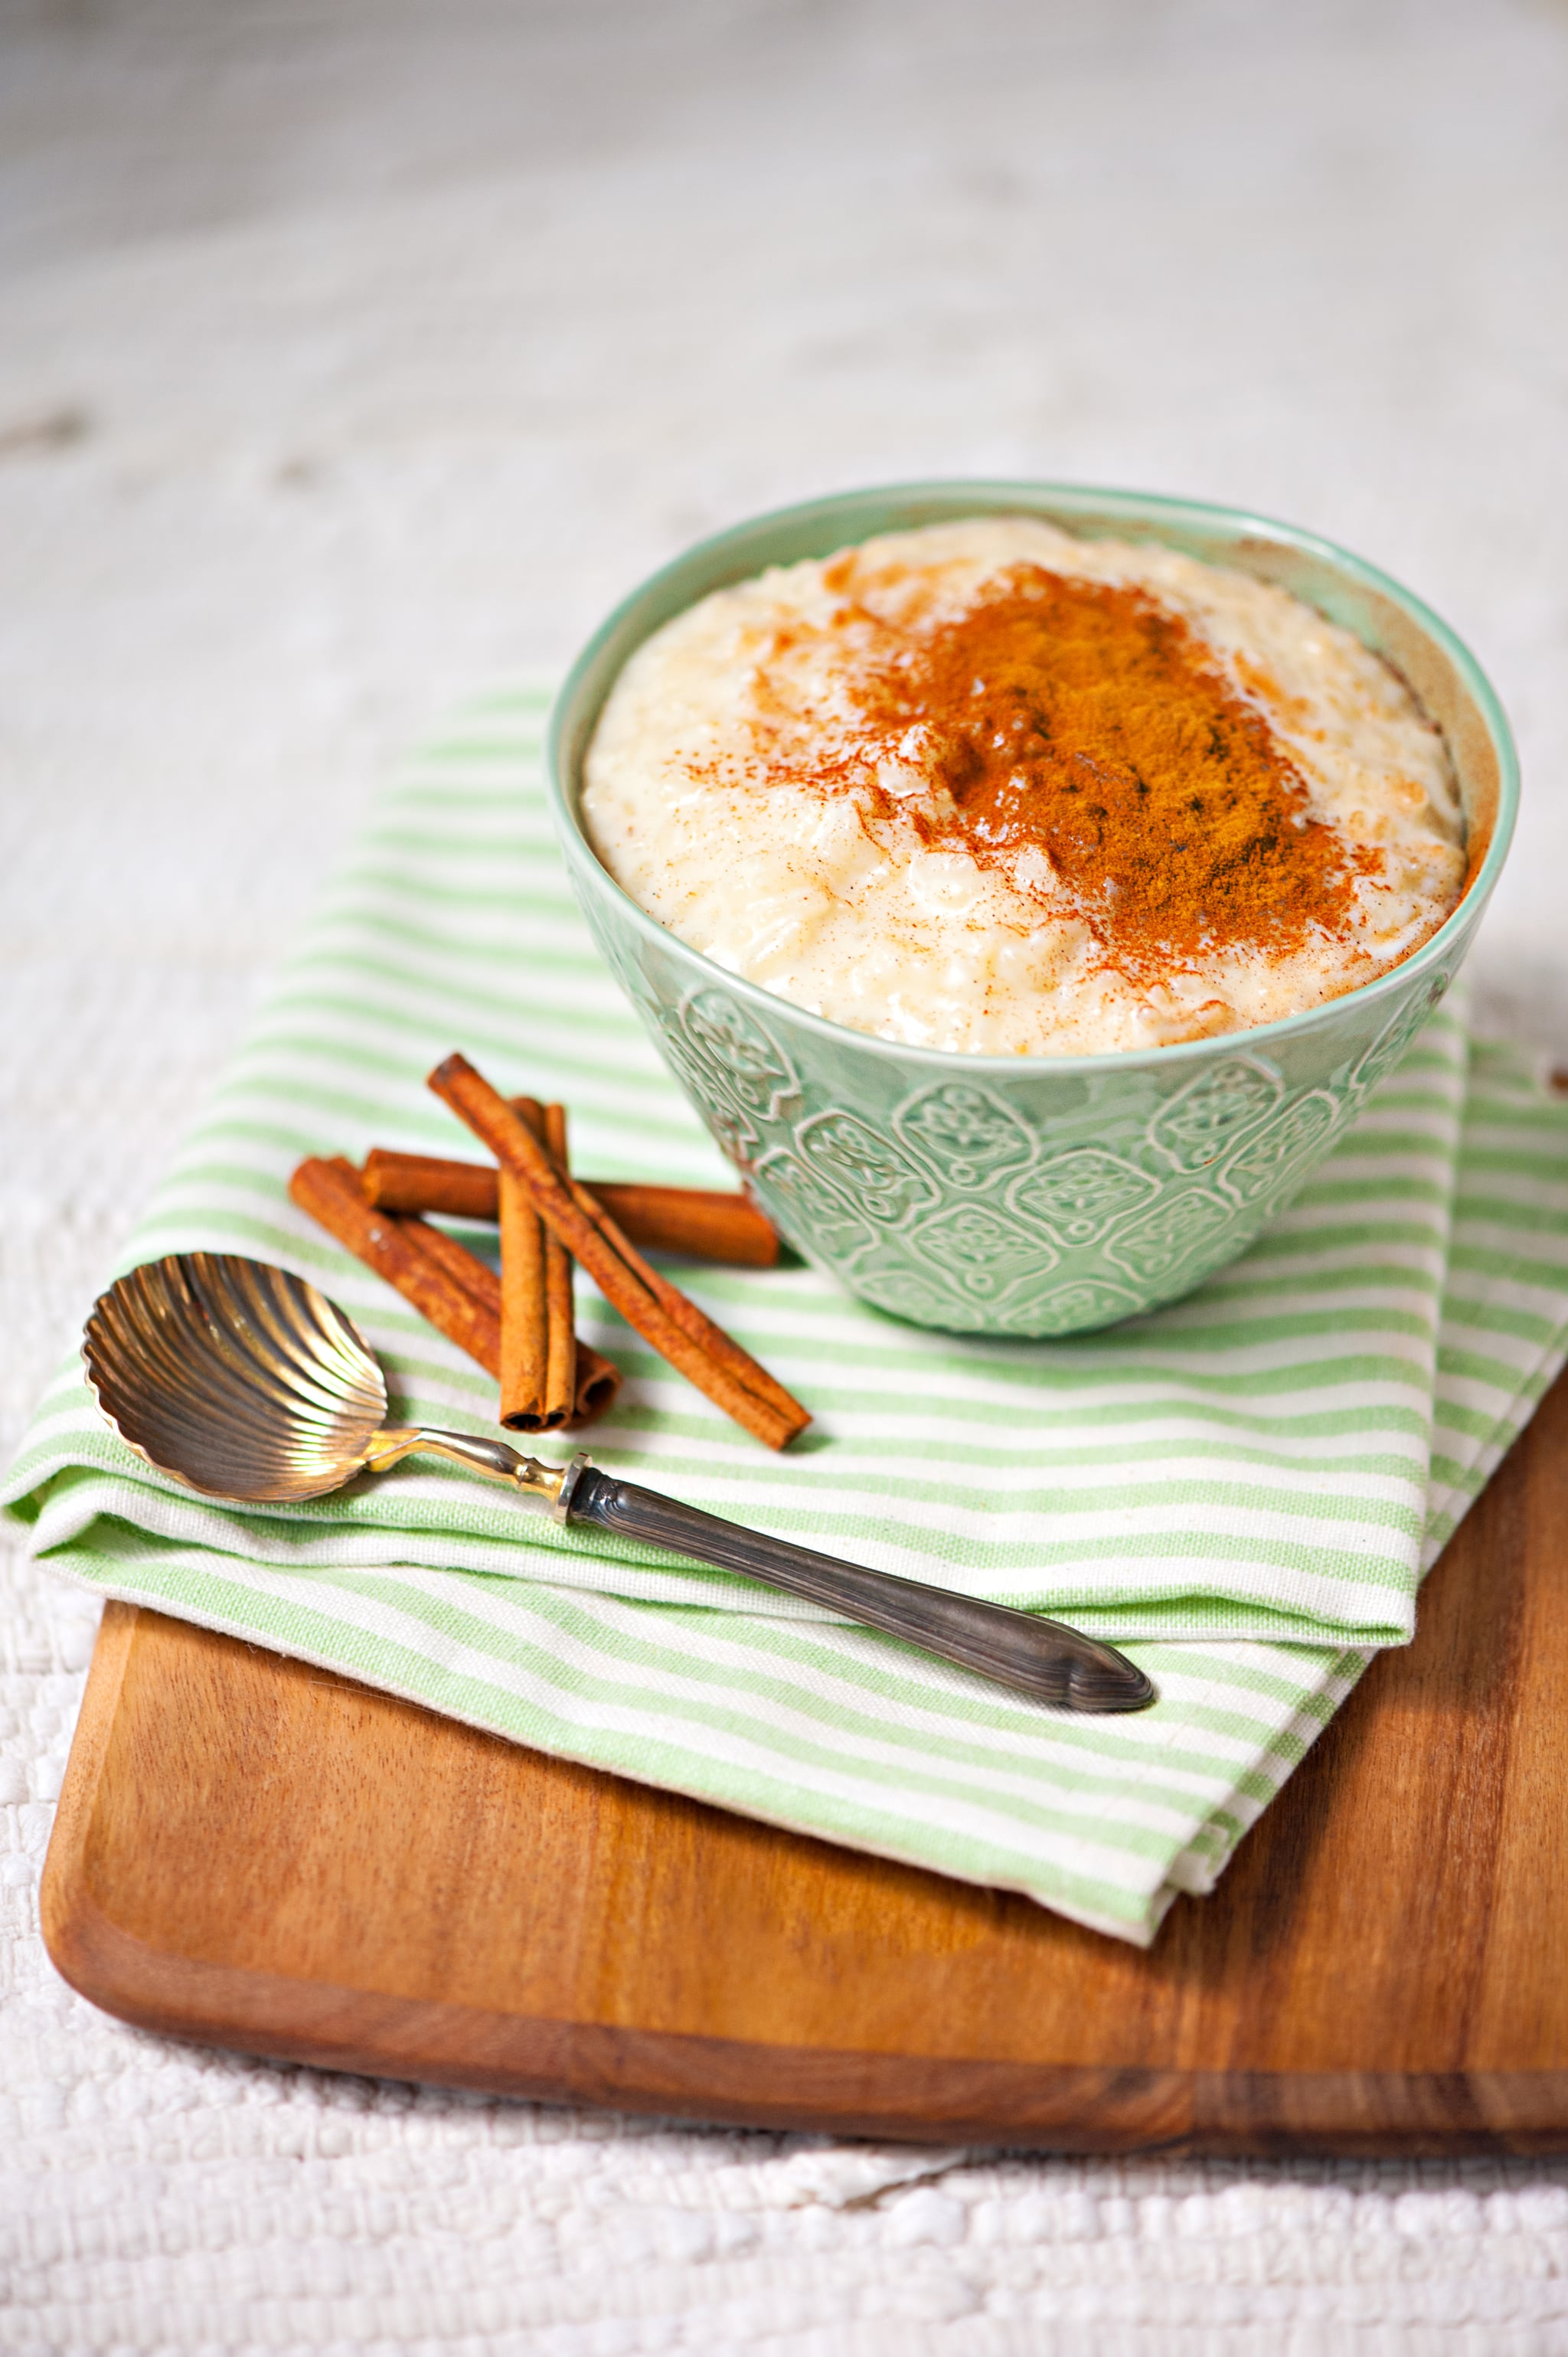 Milk rice pudding in green porcelain bowl with cinnamon powder on top, on a wooden board as background